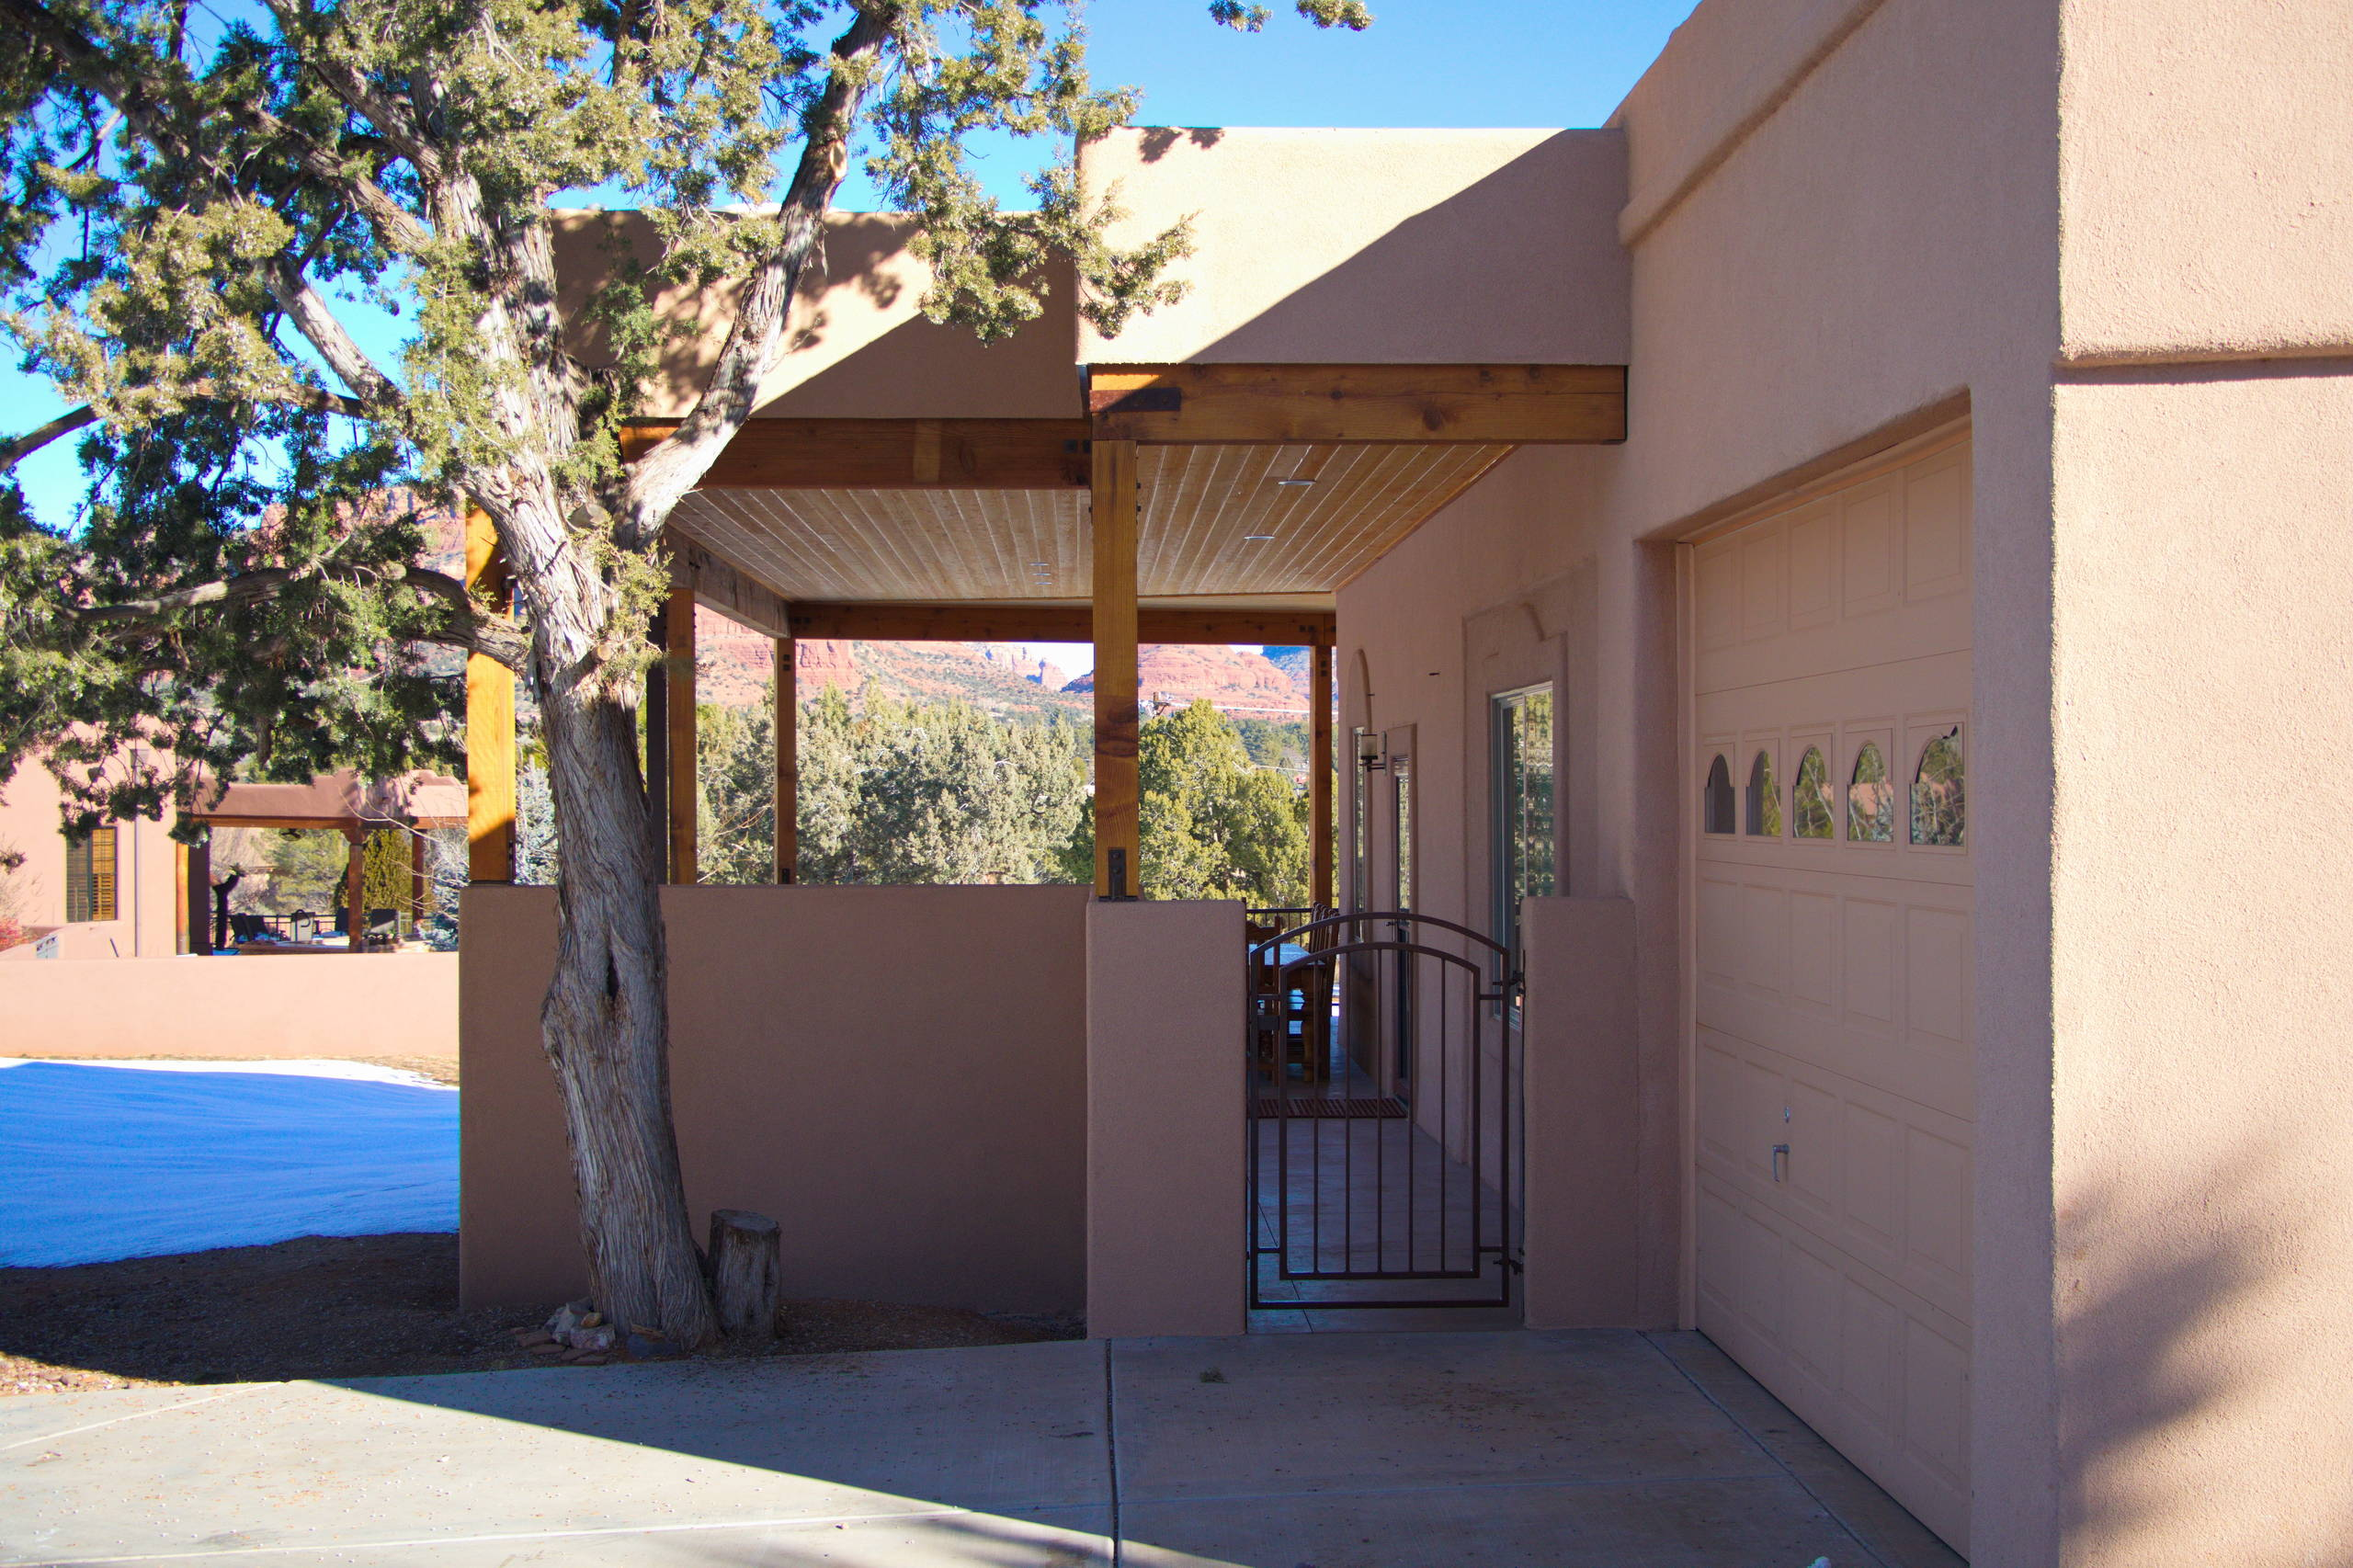 Wrap-around patio with tongue and groove ceiling